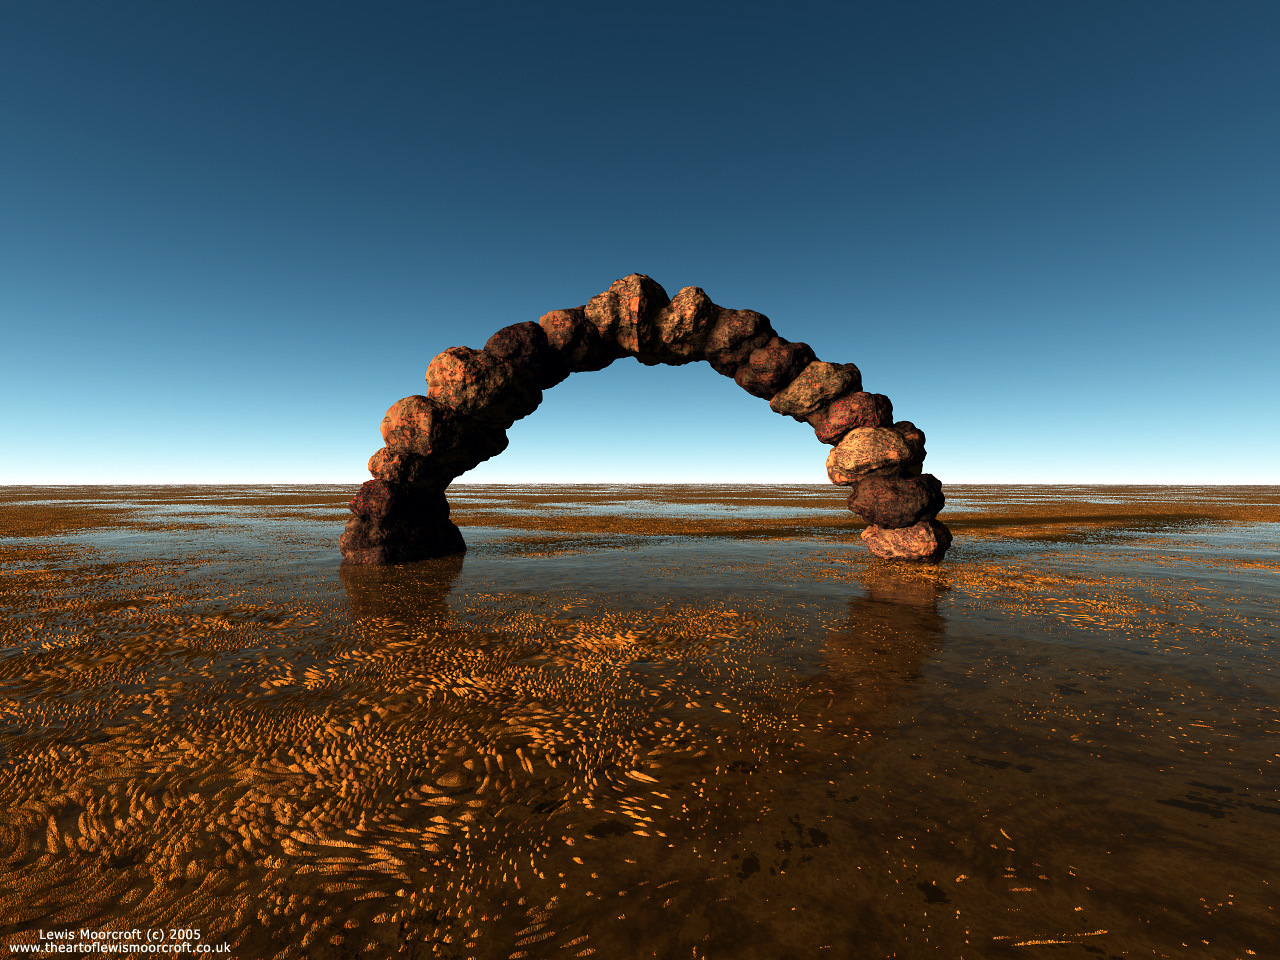 The Forgotten Arch by lewis_moorcroft